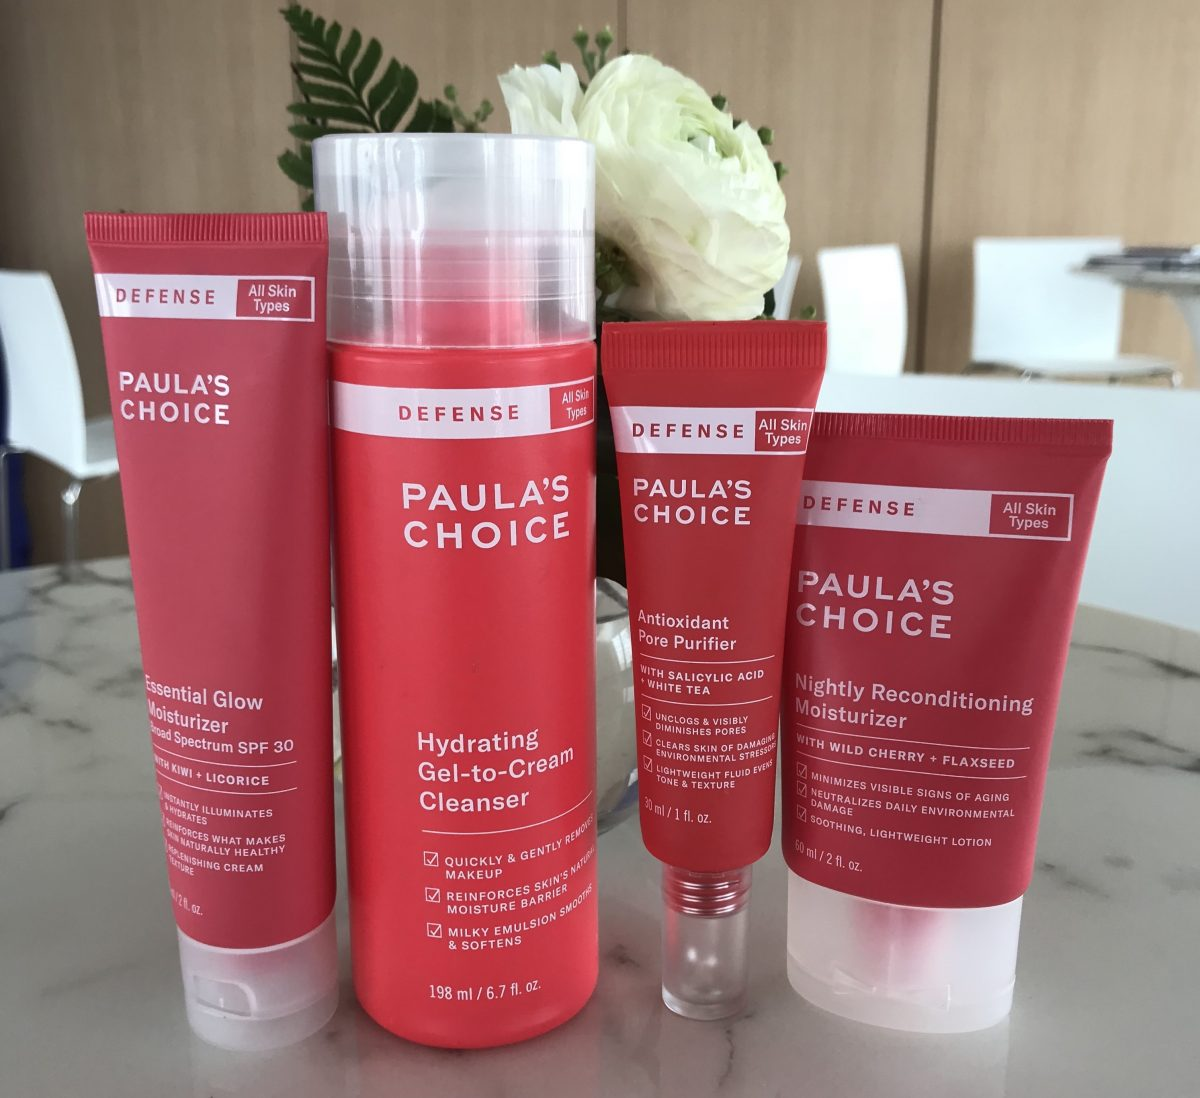 Blue Light, Ground Ozone, And Car Exhaust Are Harming Your Skin Every Day: Paula's Choice New Defense Line Can Help